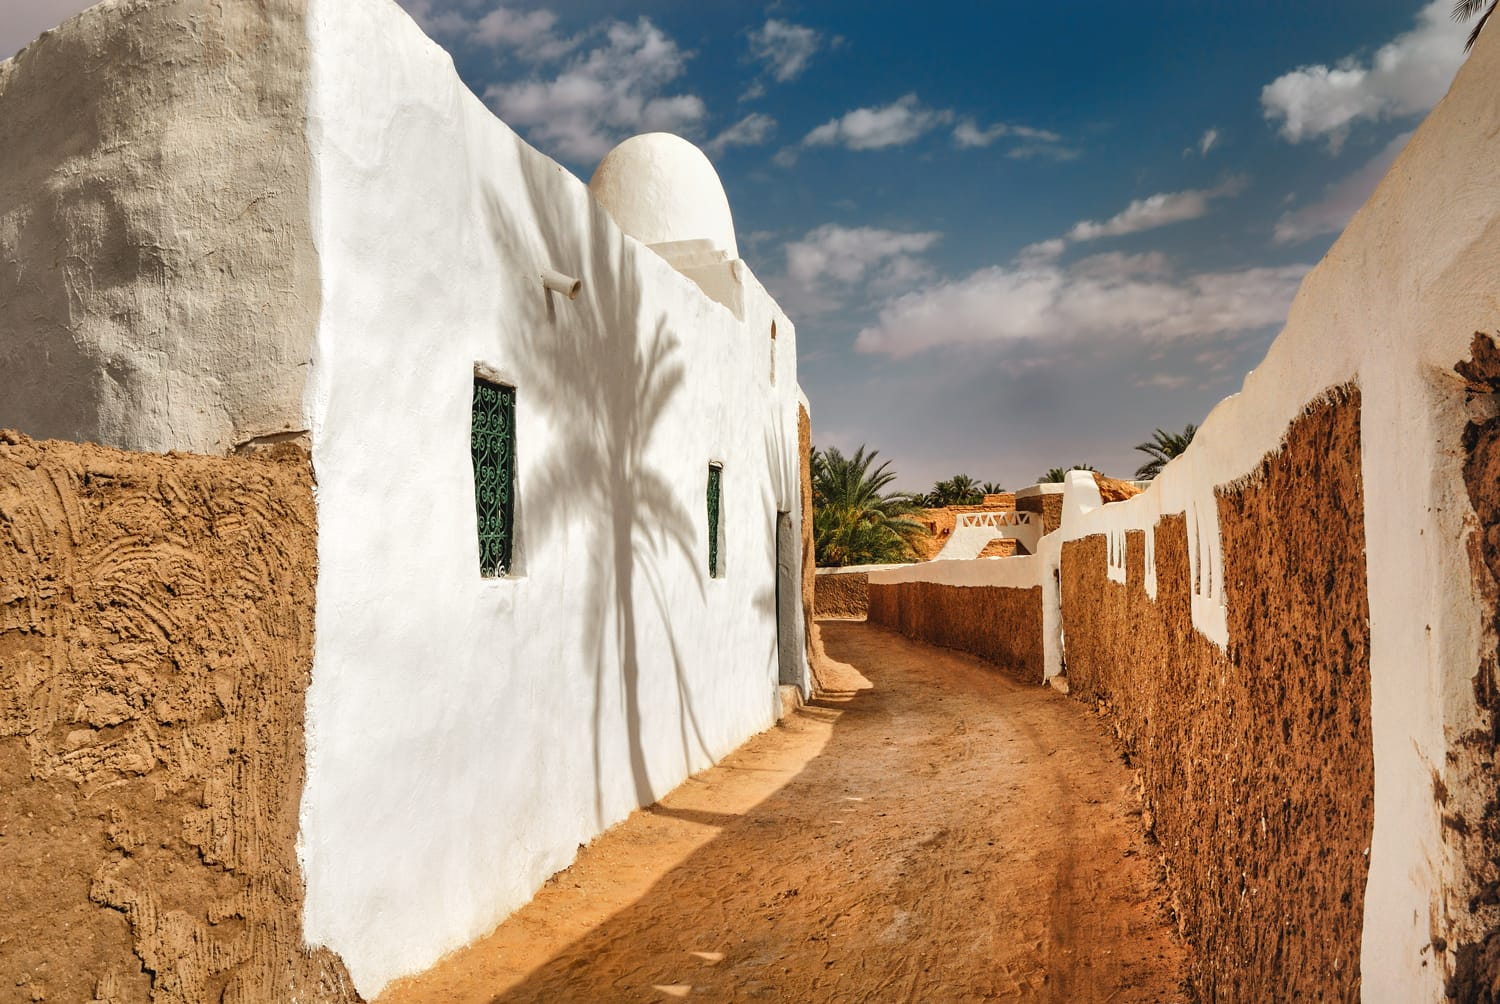 Ghadames, ancient berber city, Libya, UNESCO wold heritage site. The pearl of the desert.